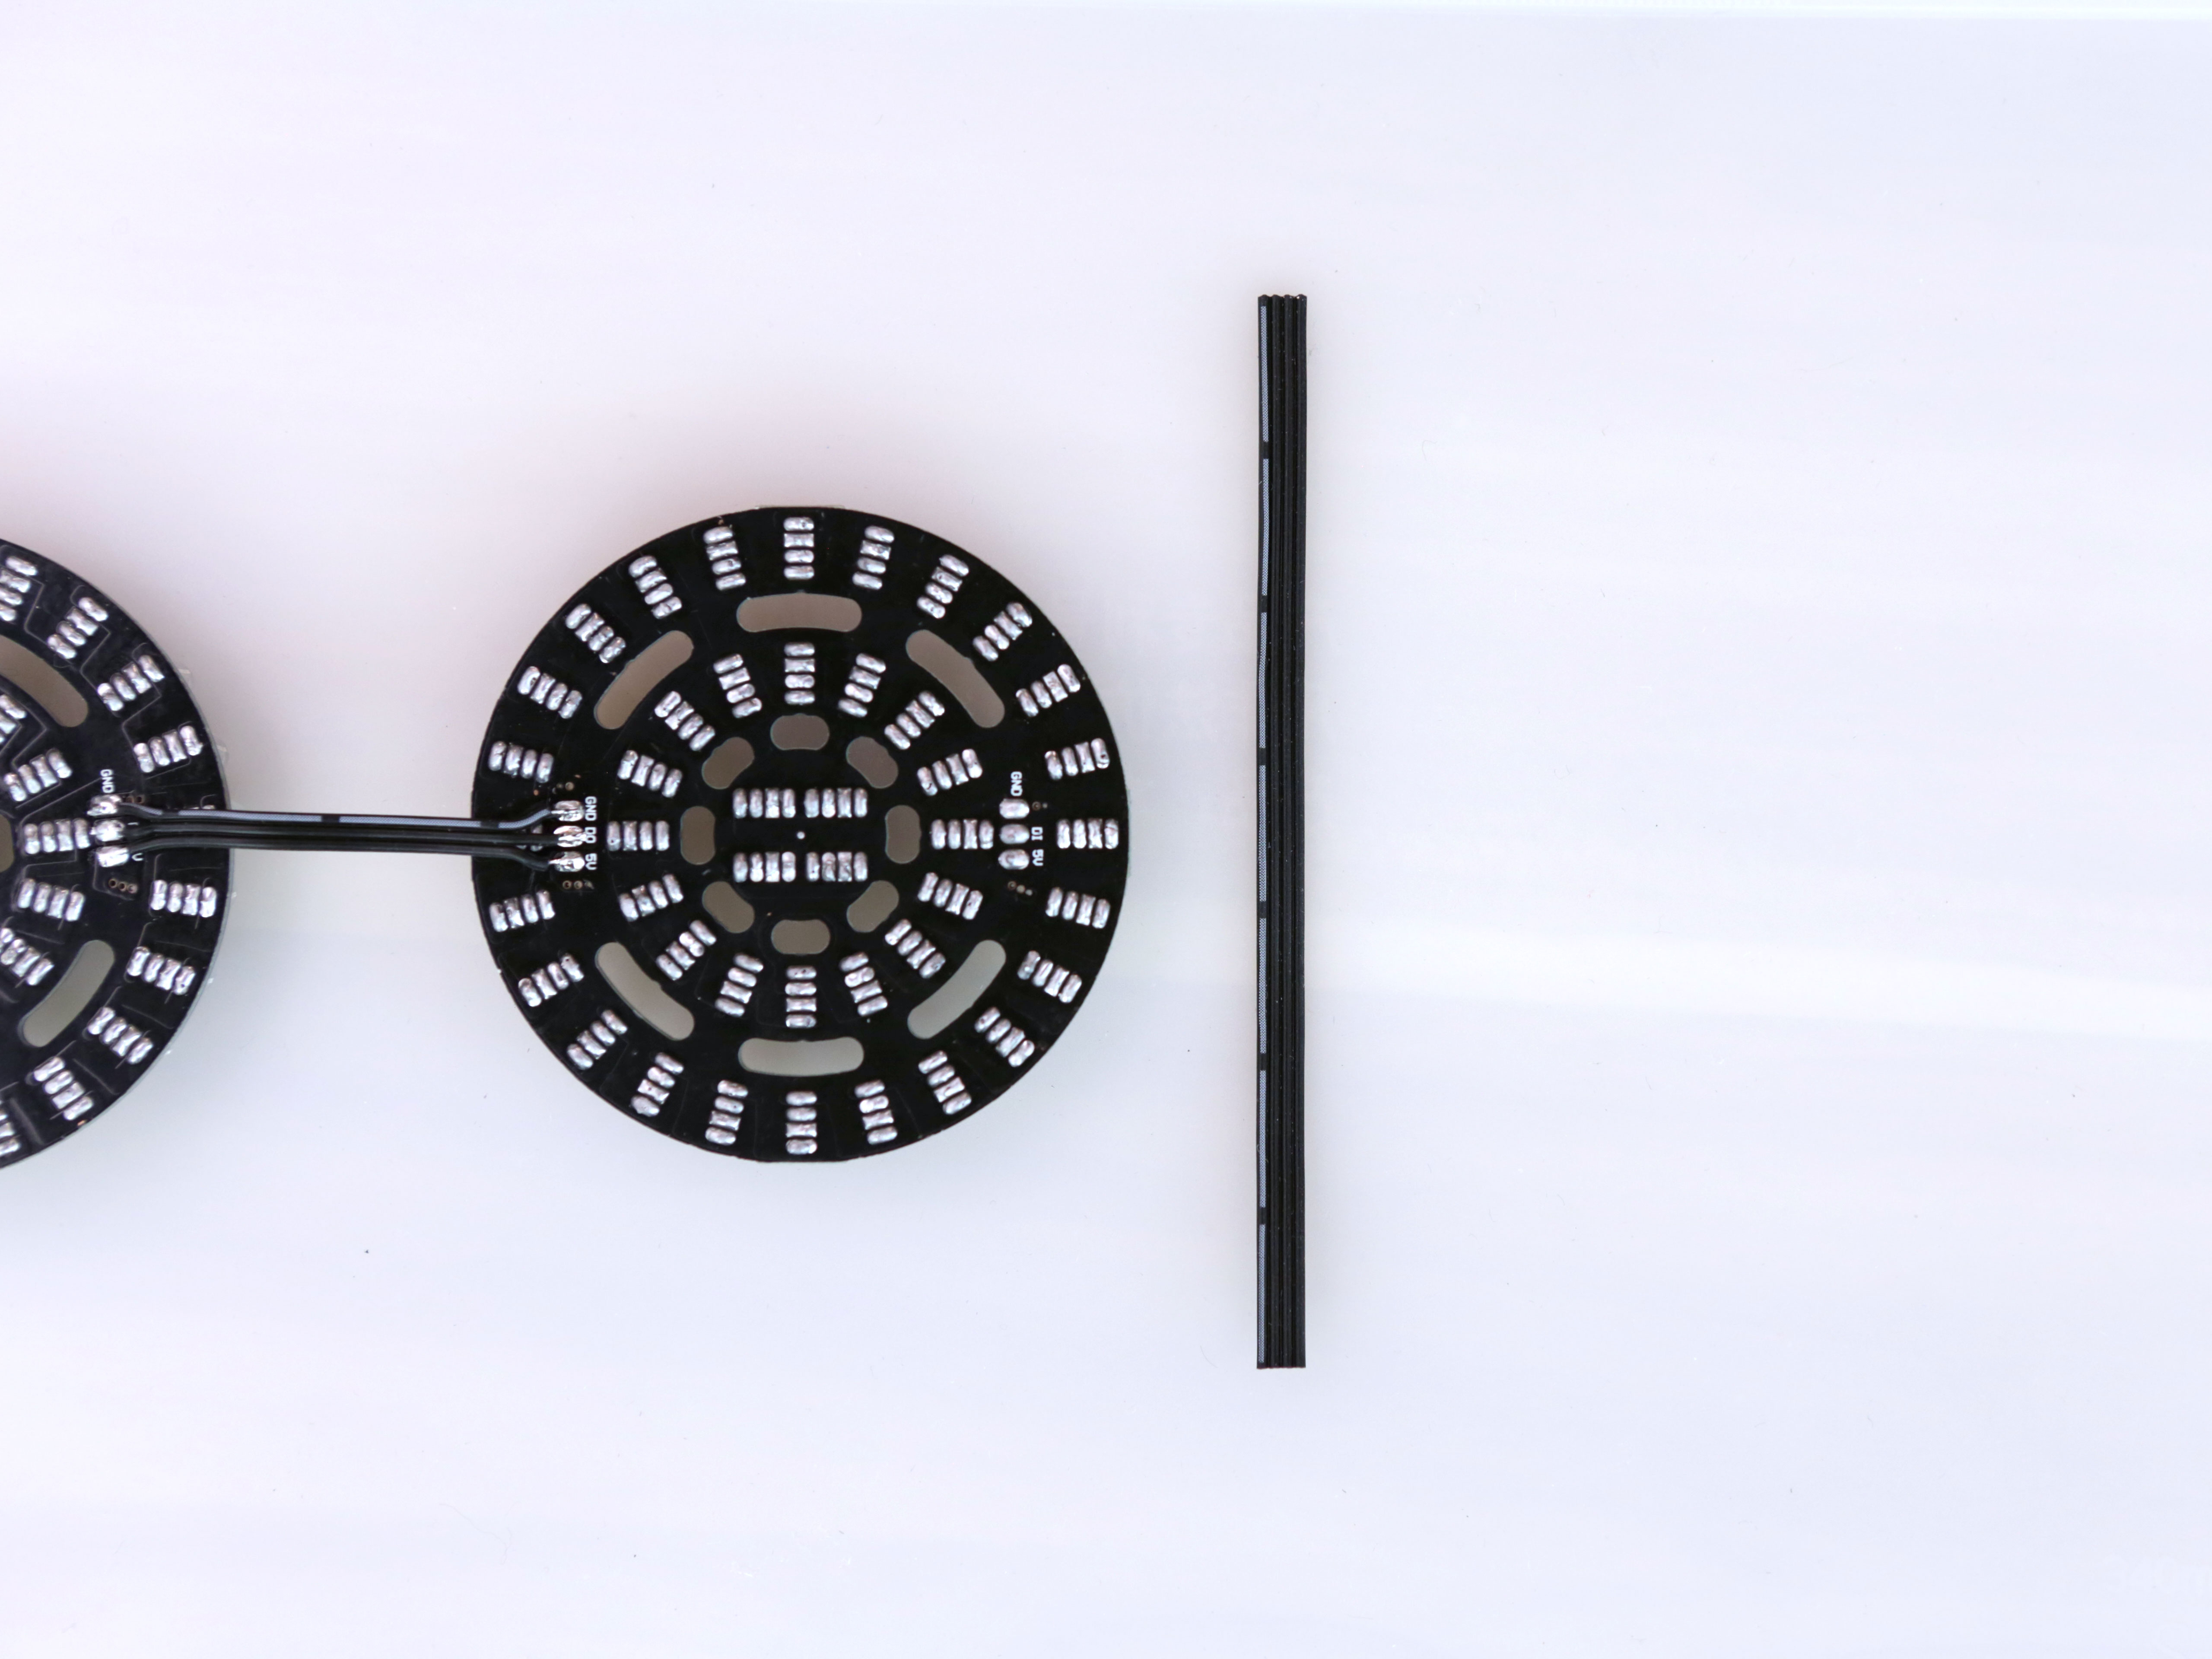 led_pixels_ring-right-wire.jpg